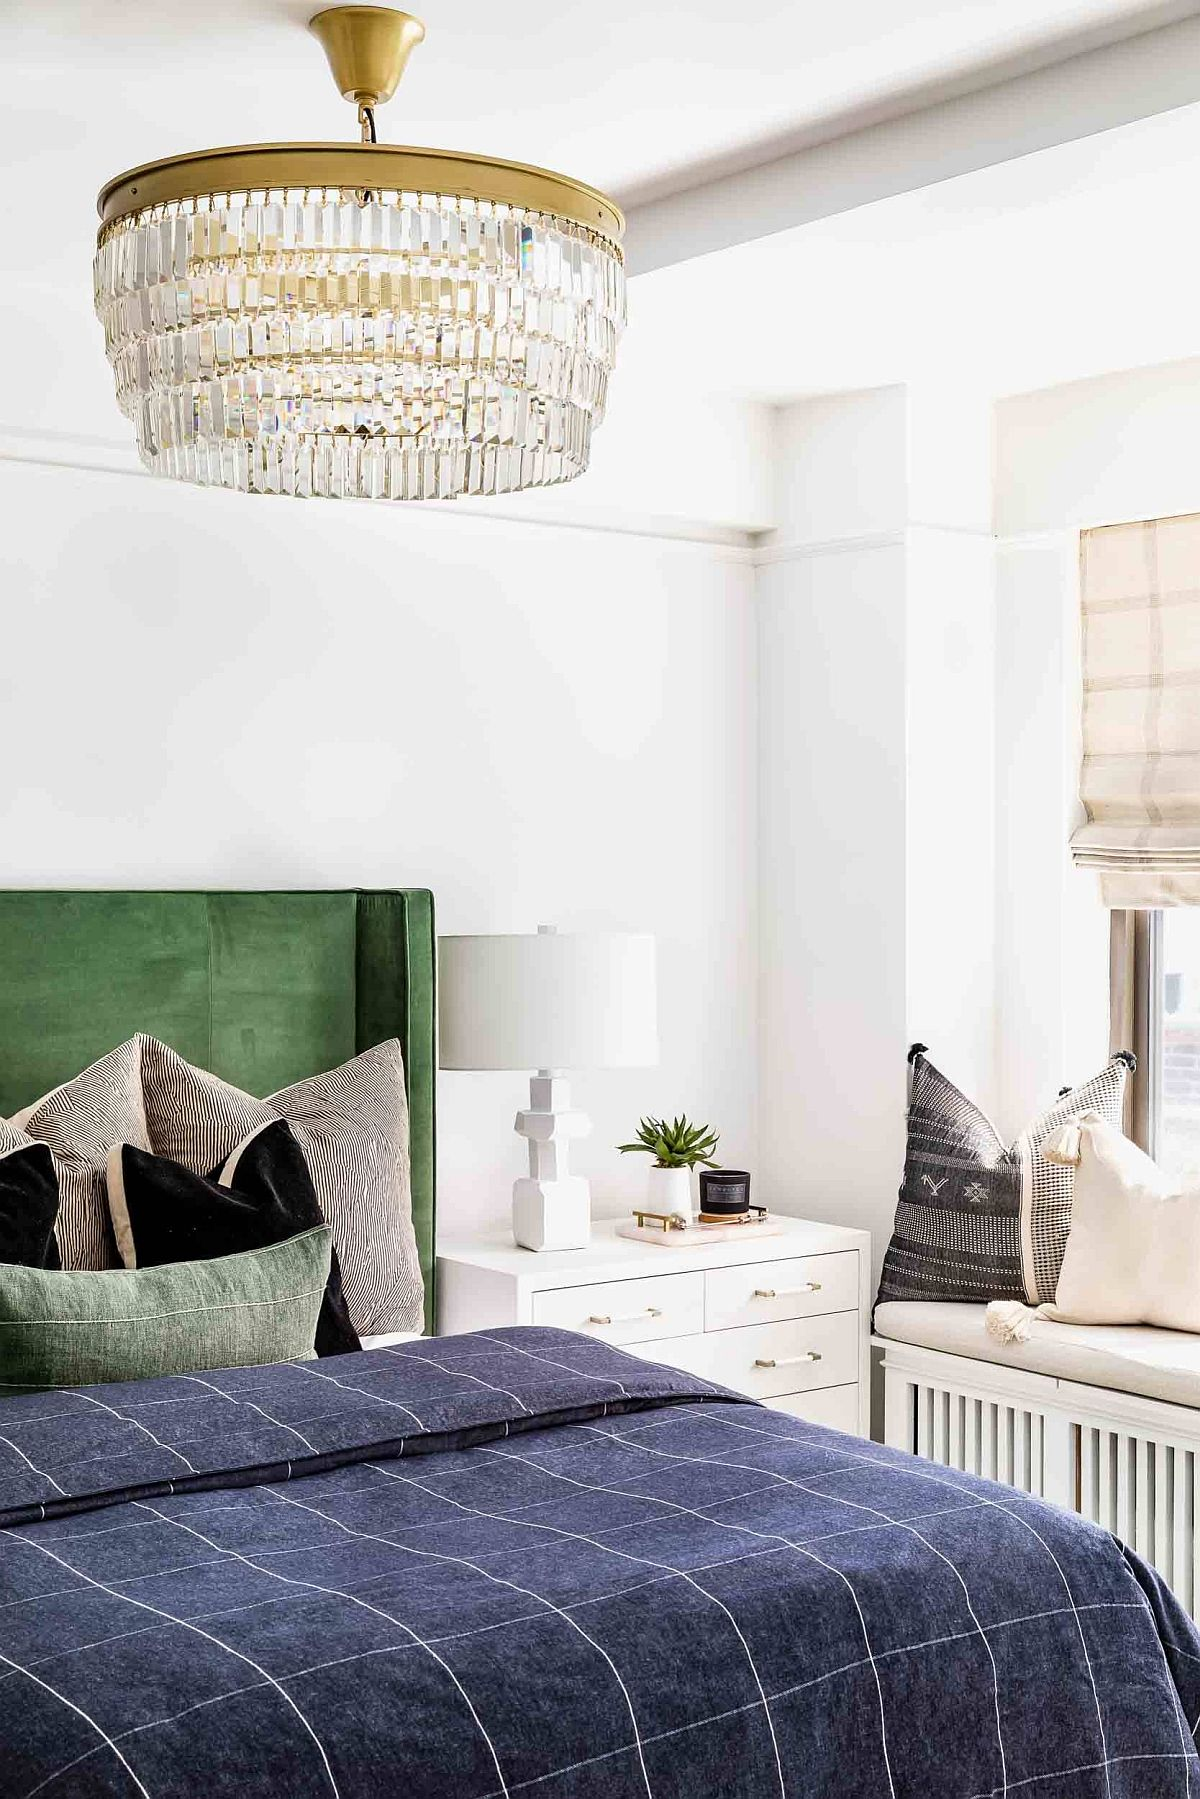 Small-and-space-savvy-bedroom-of-NYC-apartment-with-green-headboard-and-window-seat-55744